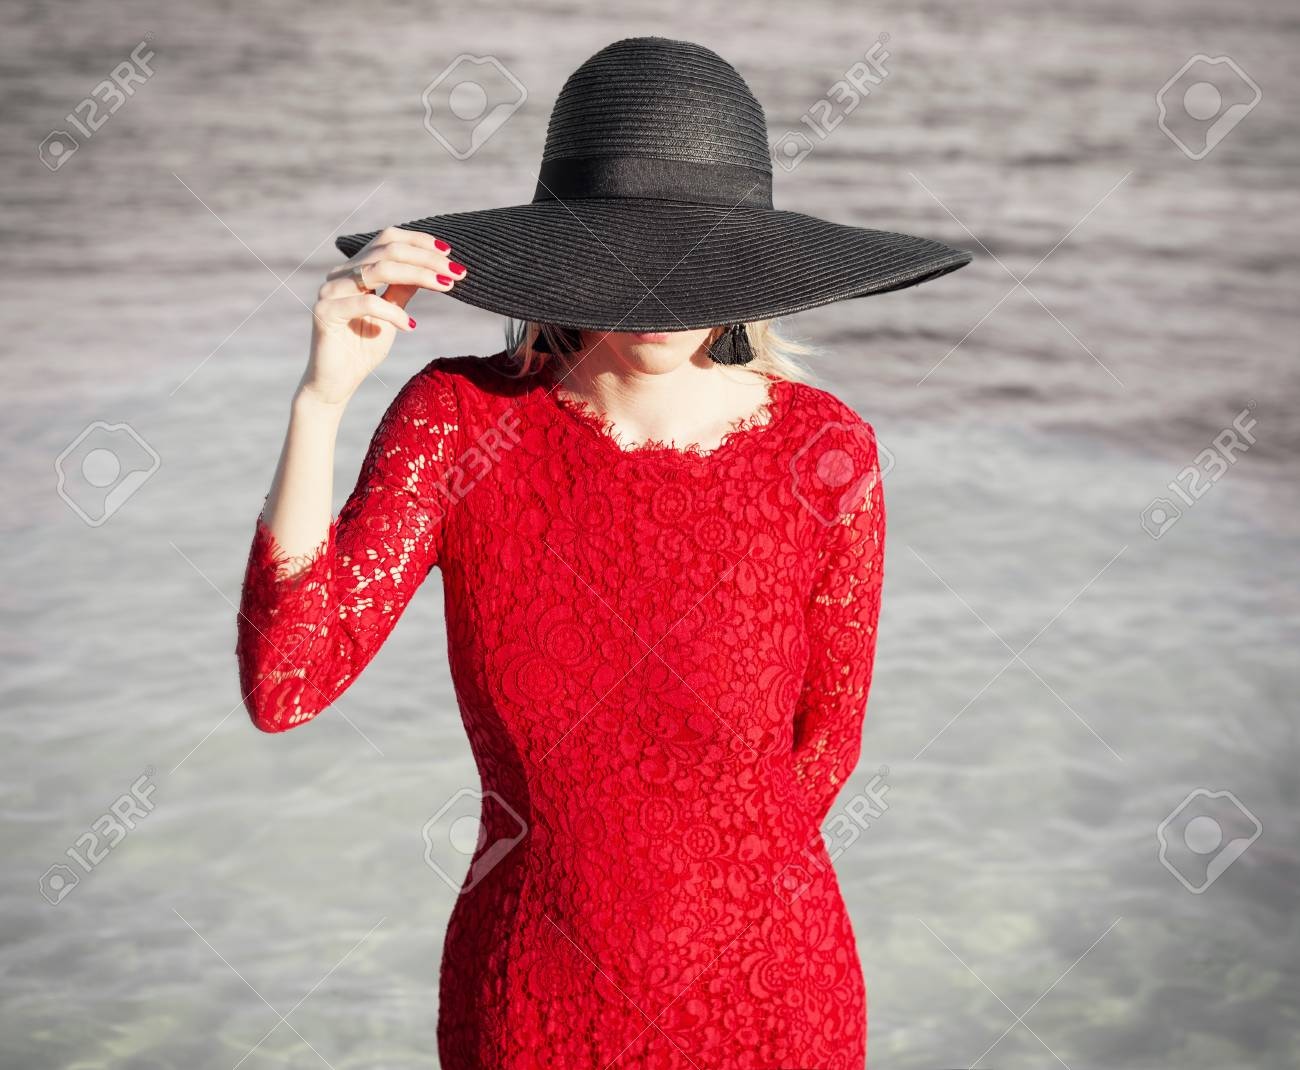 Stock Photo - Woman in red dress and black hat 894f68acd6d